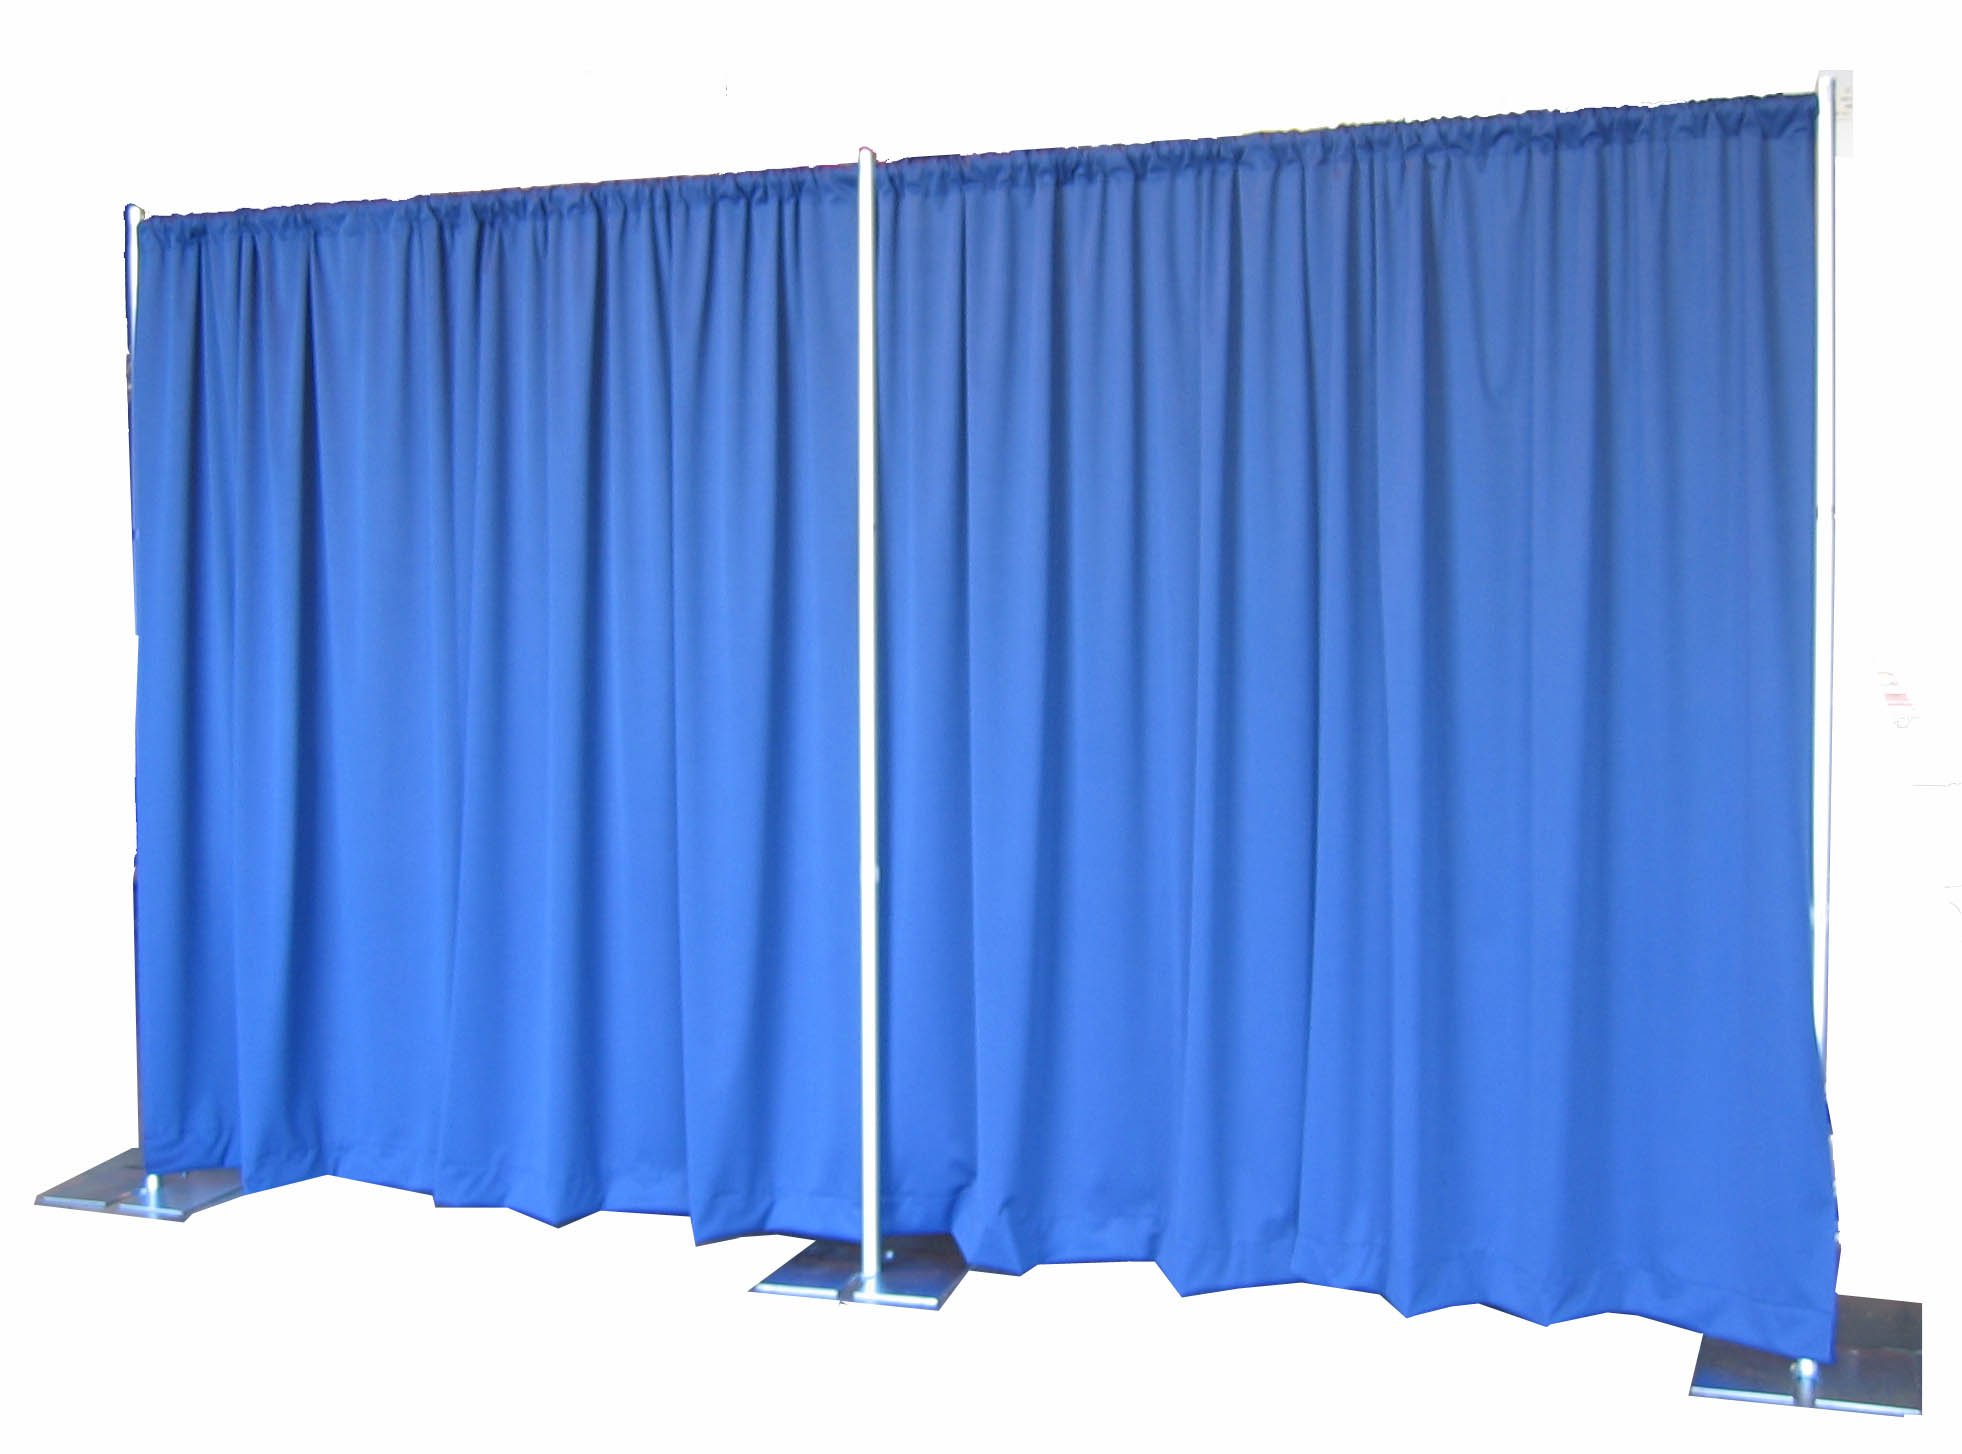 Pipe and Drape Backdrop 8ft x 20ft (No Drapes) by OnlineEEI